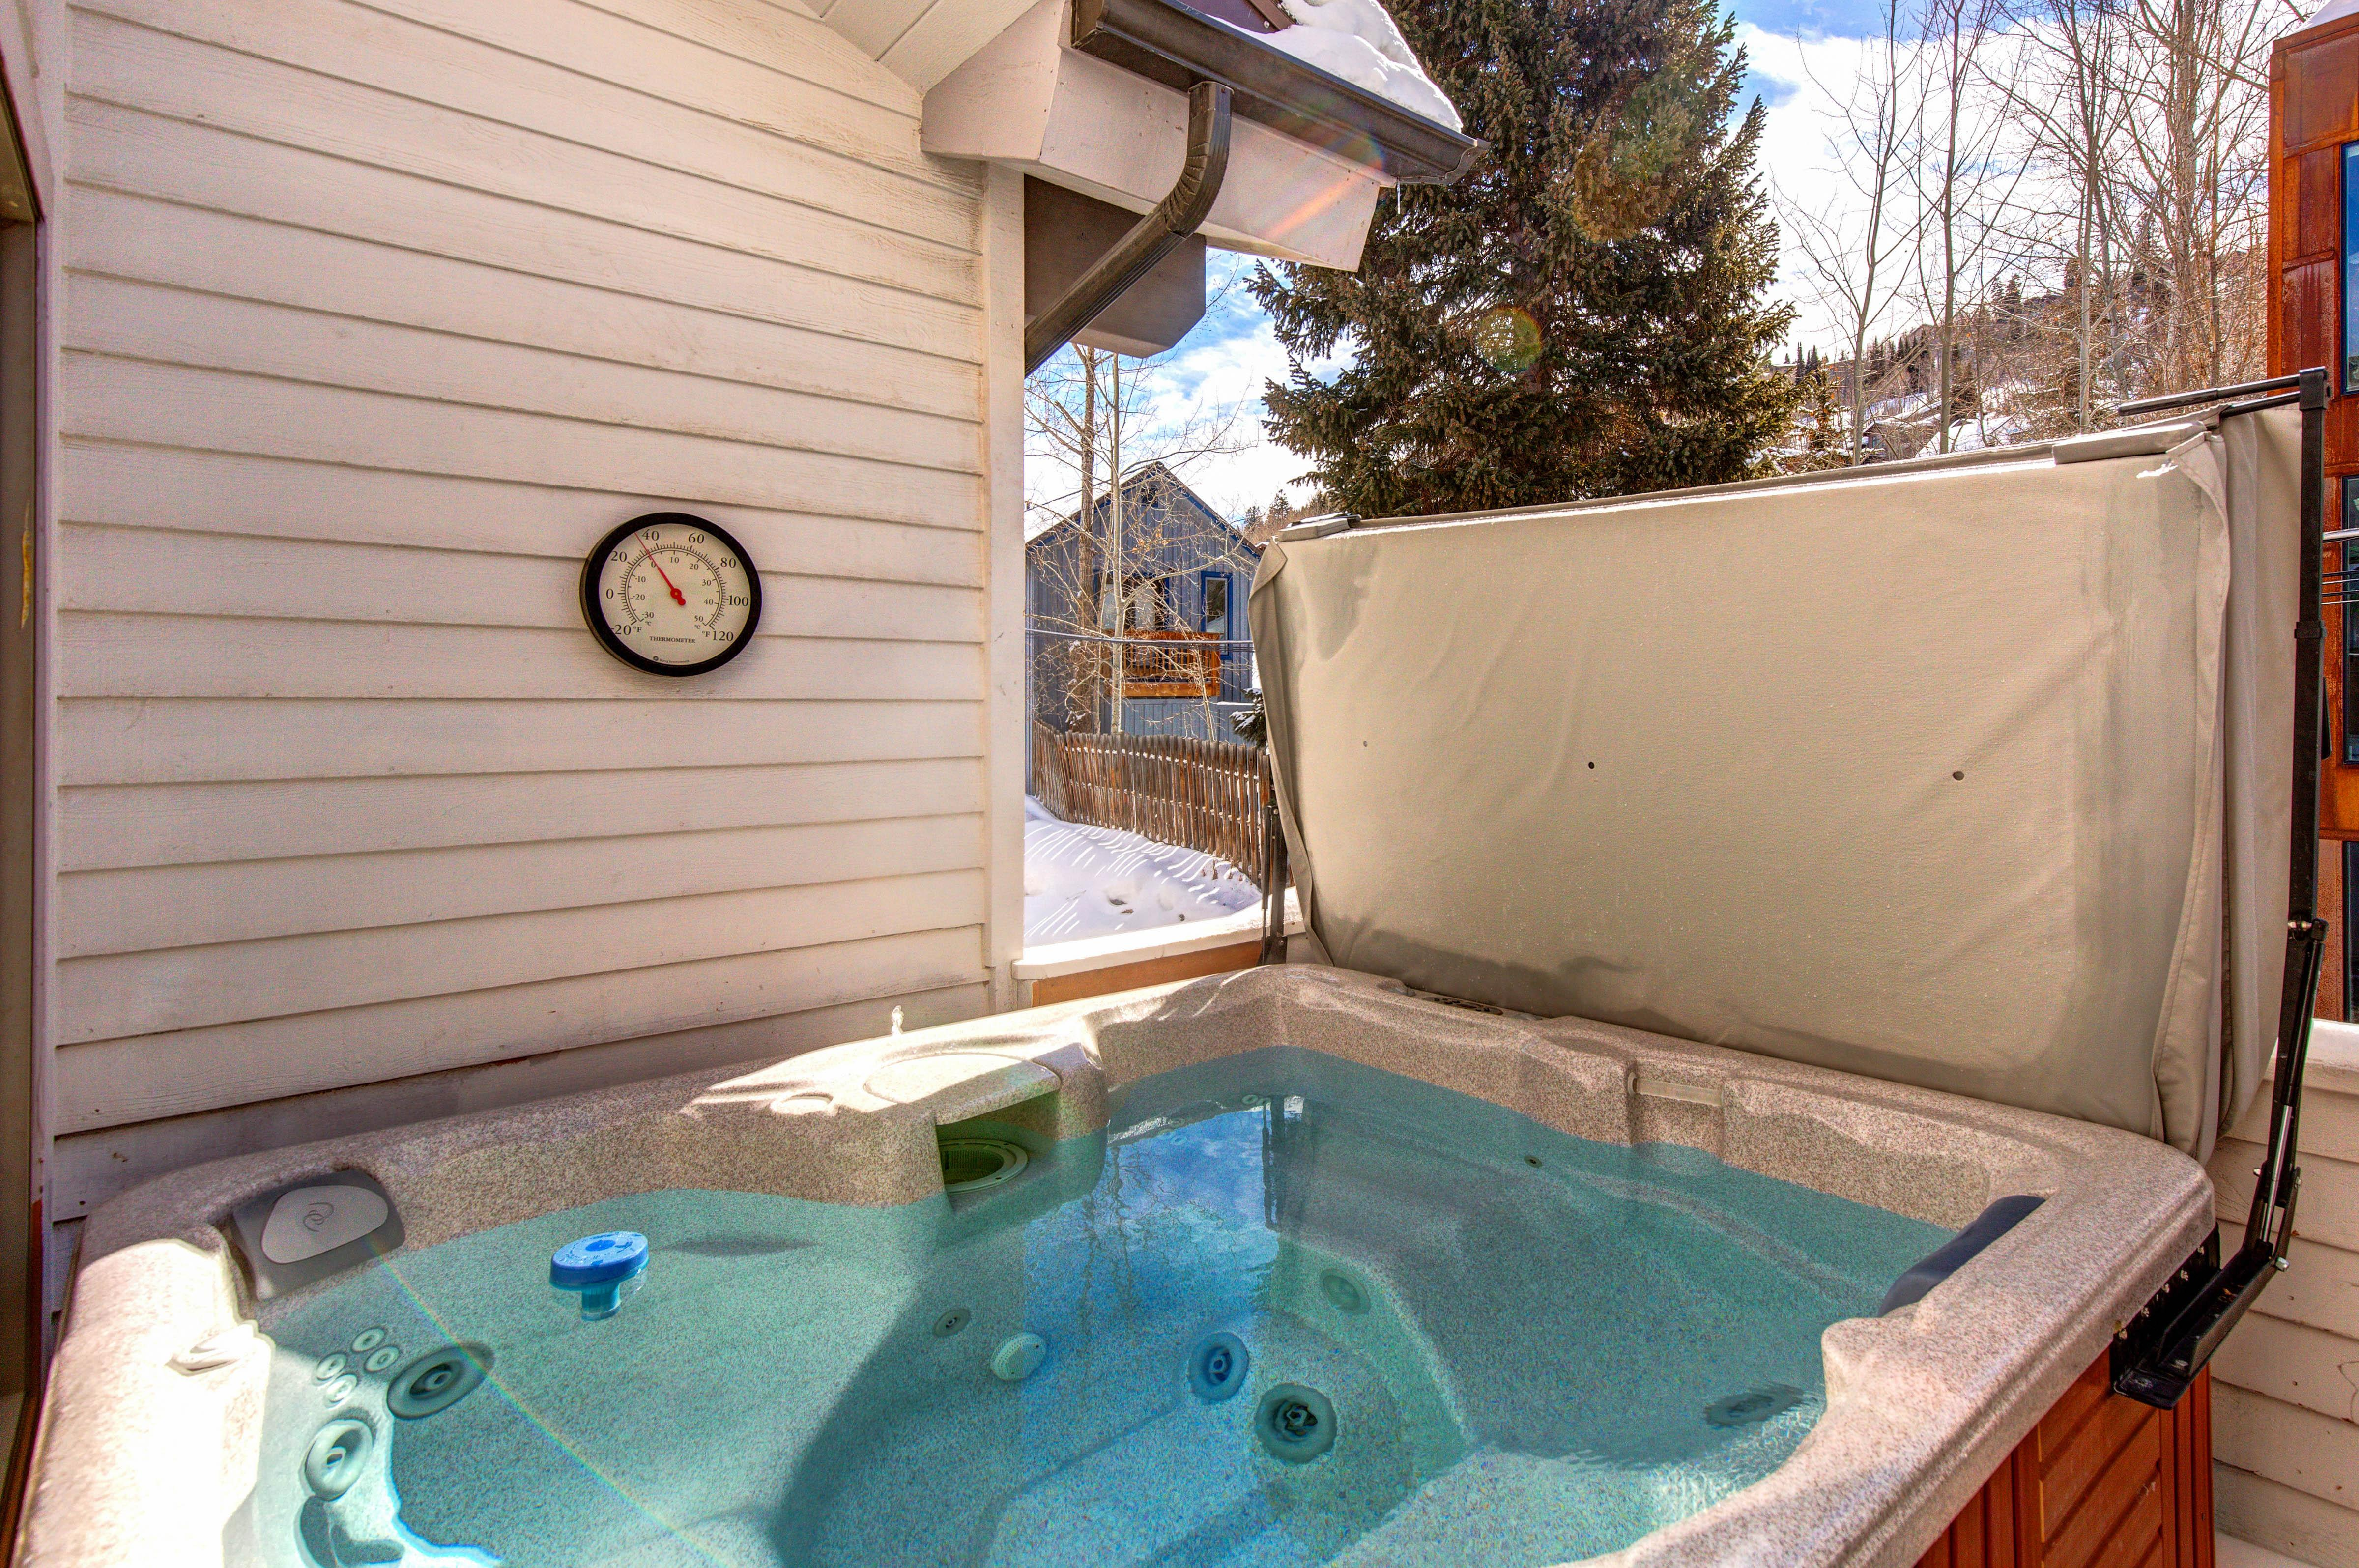 A private open-air hot tub awaits on 1 of 2 balconies.